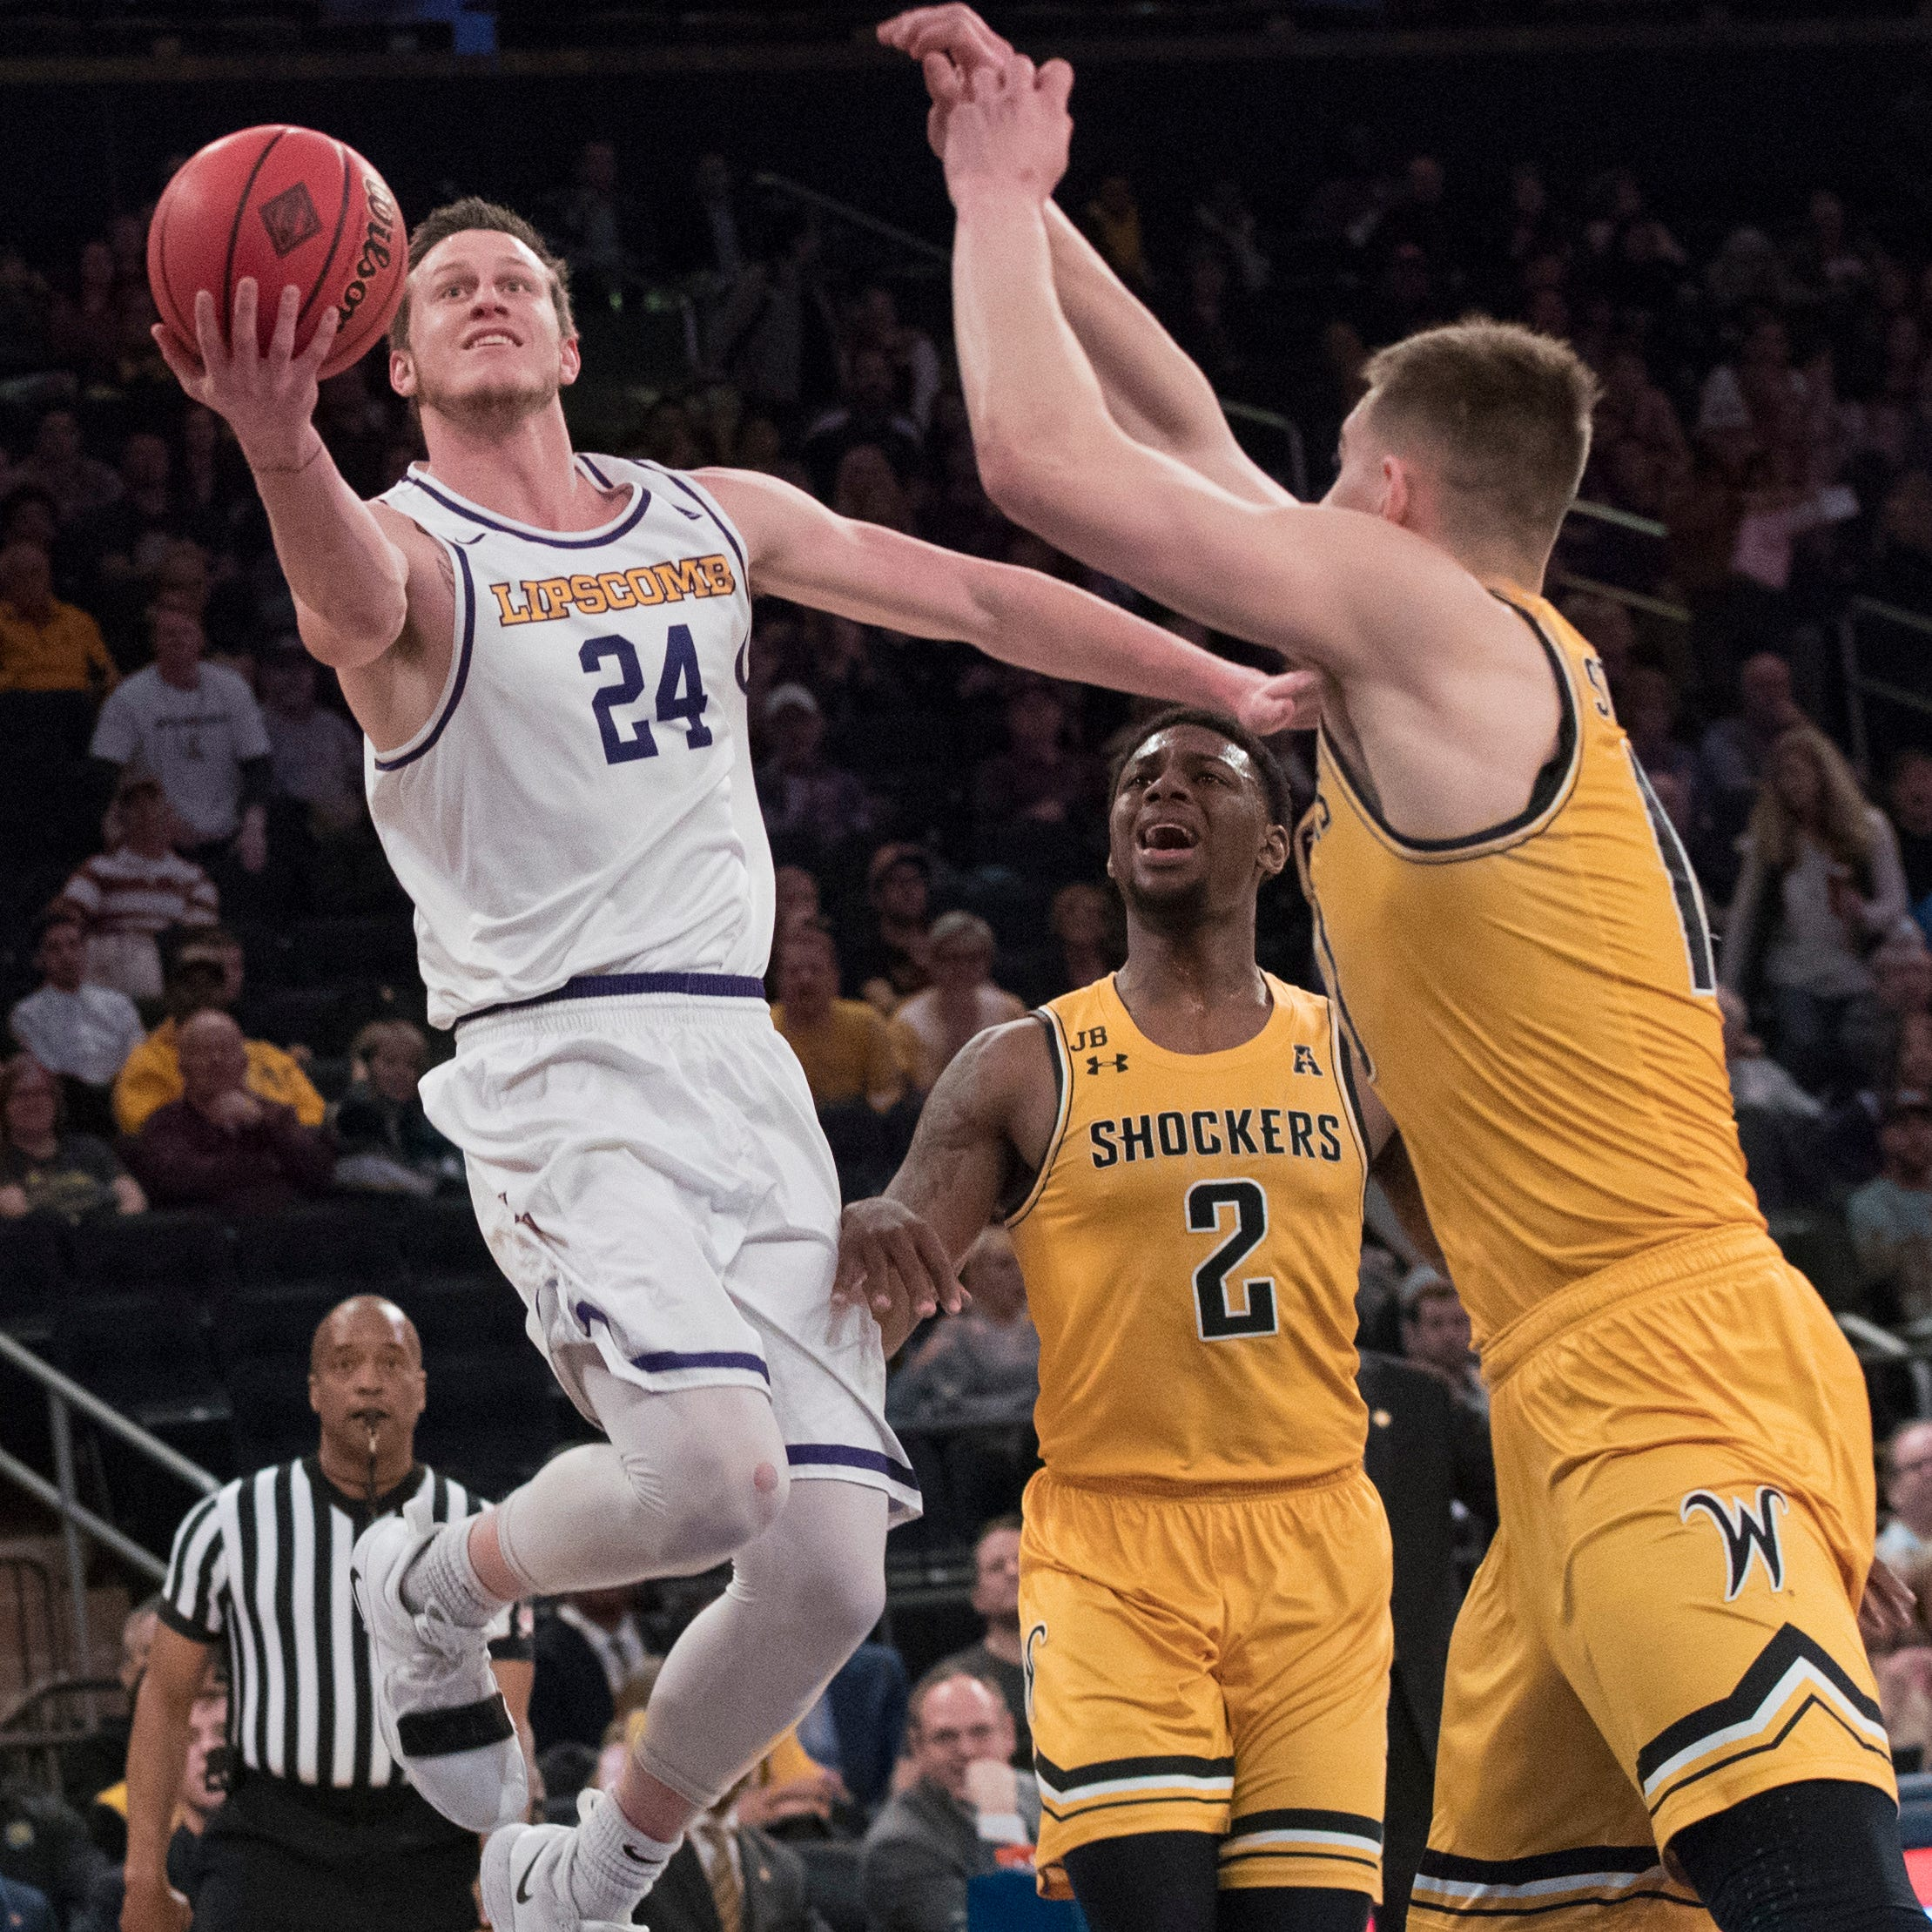 Lipscomb basketball shocks Wichita State, will meet Texas in NIT final at Madison Square Garden